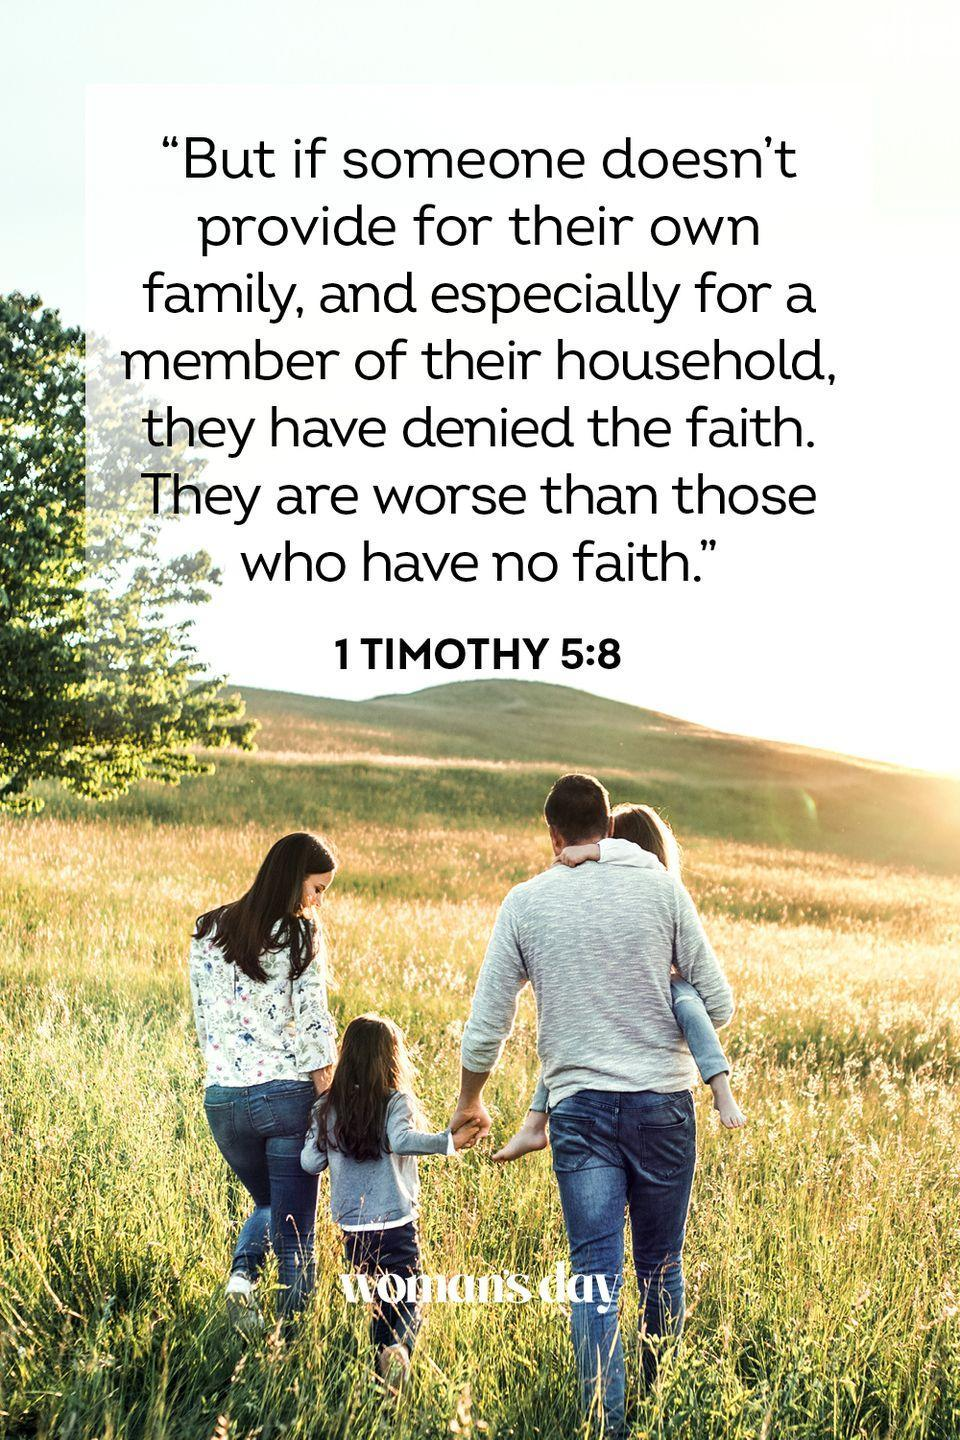 """<p>""""But if someone doesn't provide for their own family, and especially for a member of their household, they have denied the faith. They are worse than those who have no faith."""" — 1 Timothy 5:8</p><p><strong>The Good News: </strong>If you do not love and care for your family, especially your immediate family, then you are denying your faith in God. In scripture, this is worse than not believing in God at all.</p>"""